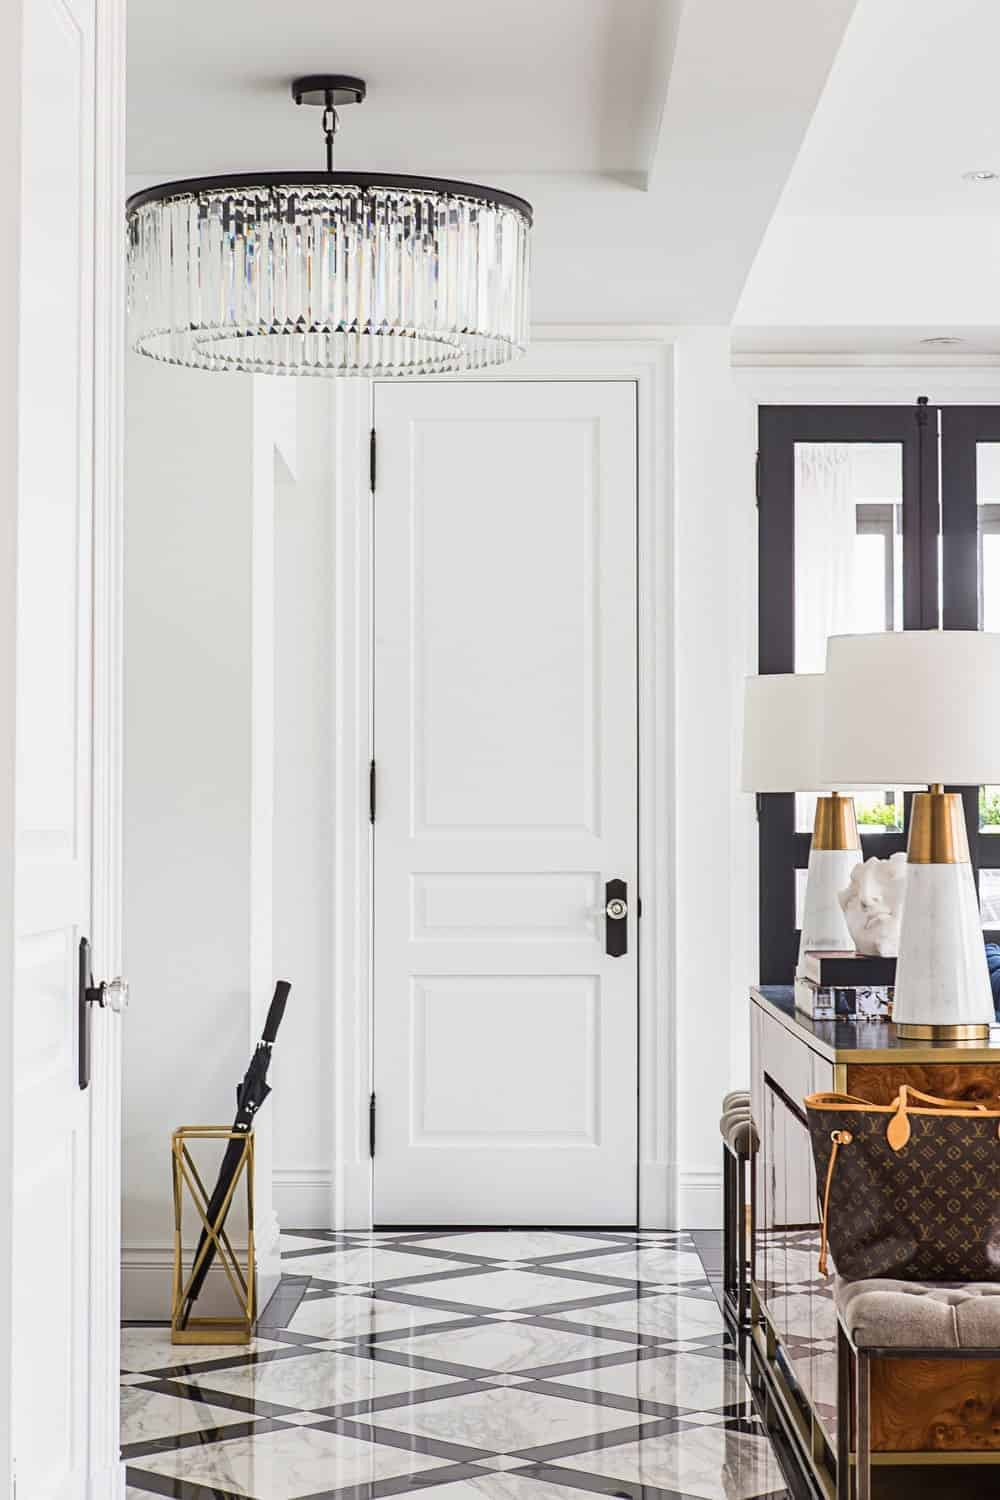 The crystal semi-flush light mounted on the white tray ceiling is the highlight of this small foyer that has a white door that blends with the white walls adorned by a golden umbrella storage on the side of the black and white patterned floor.